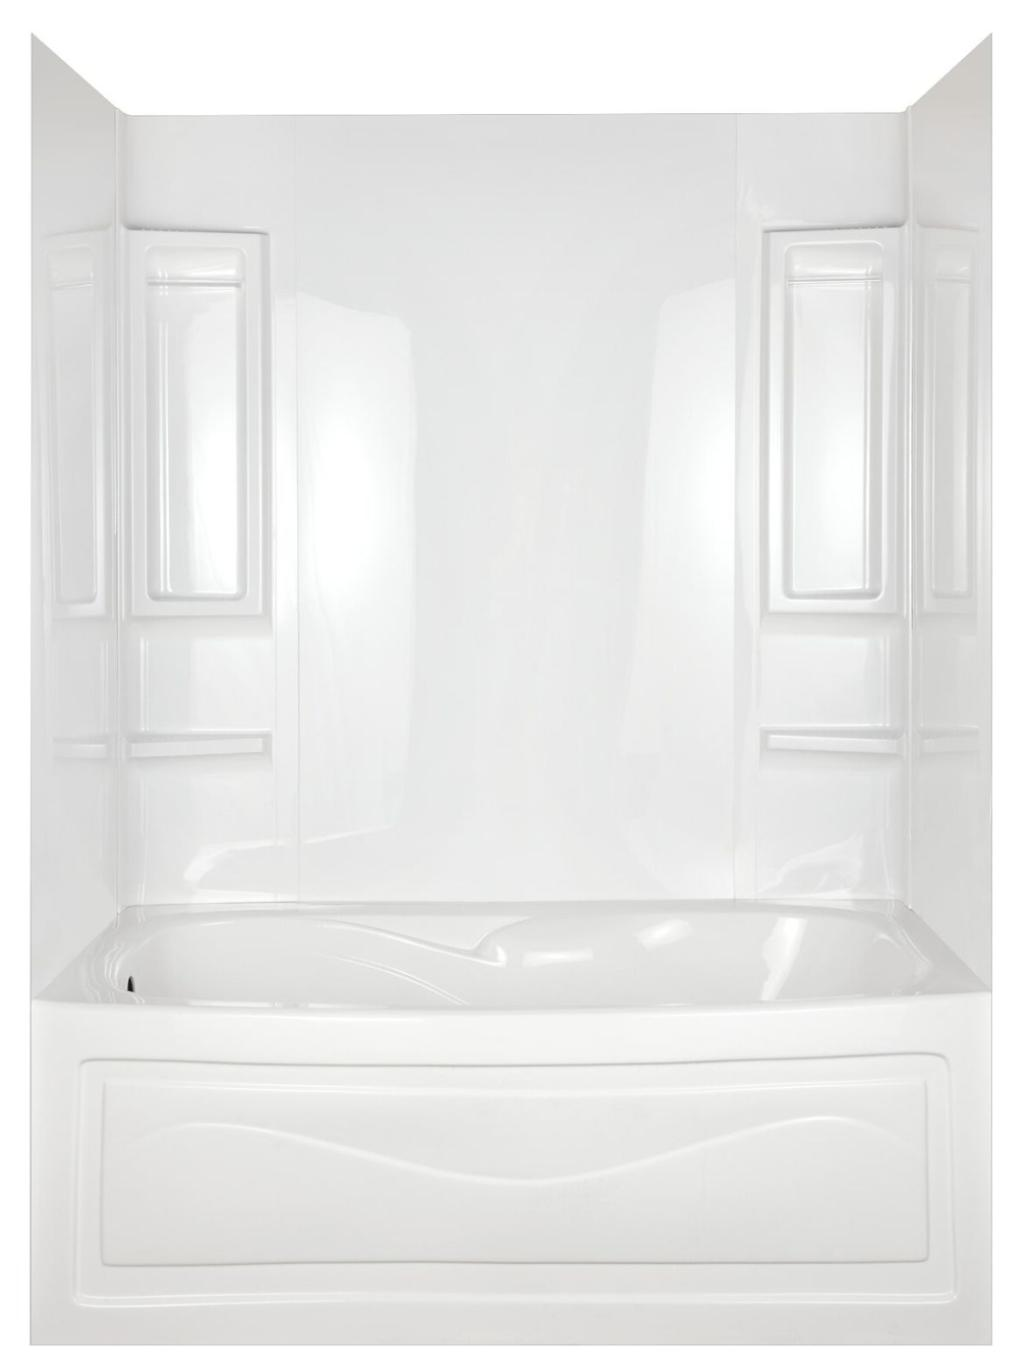 Bathtub Shower Tub Wall Surround 6 Shelves 2 Towel Bars 5 Pi